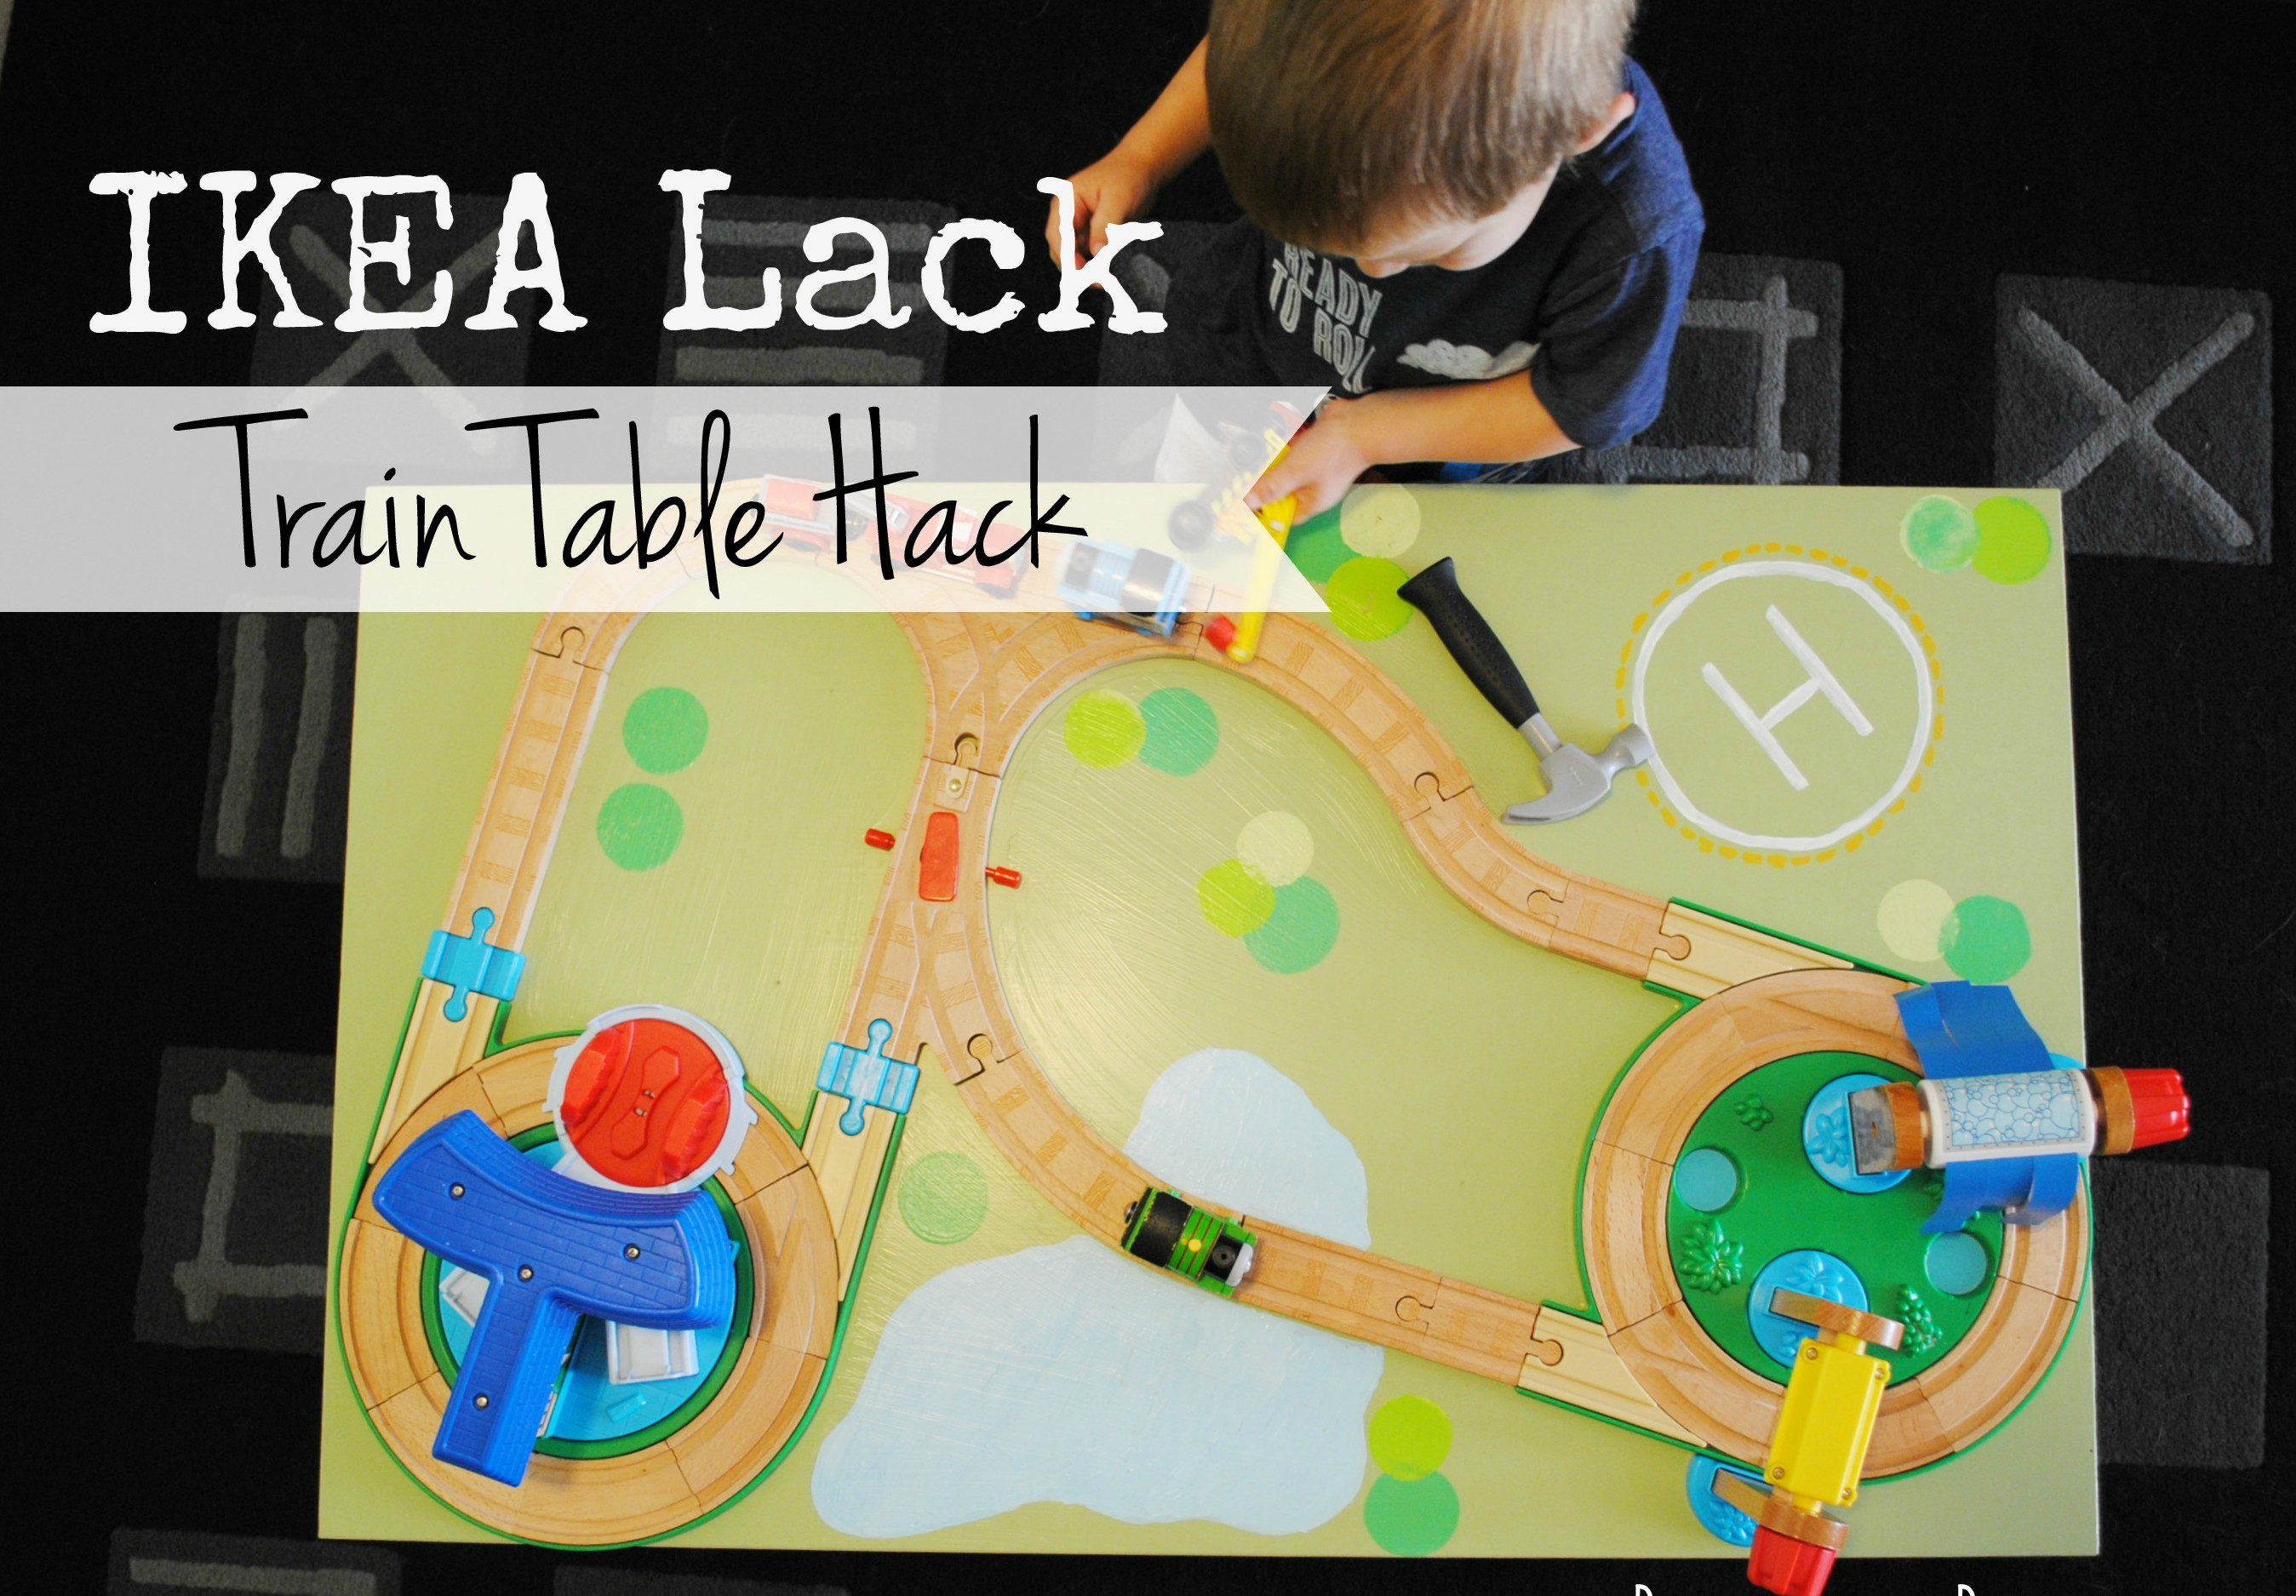 and train ikea storage the lady table wm an custom this of with tons is crazy hack tables img such activity craft